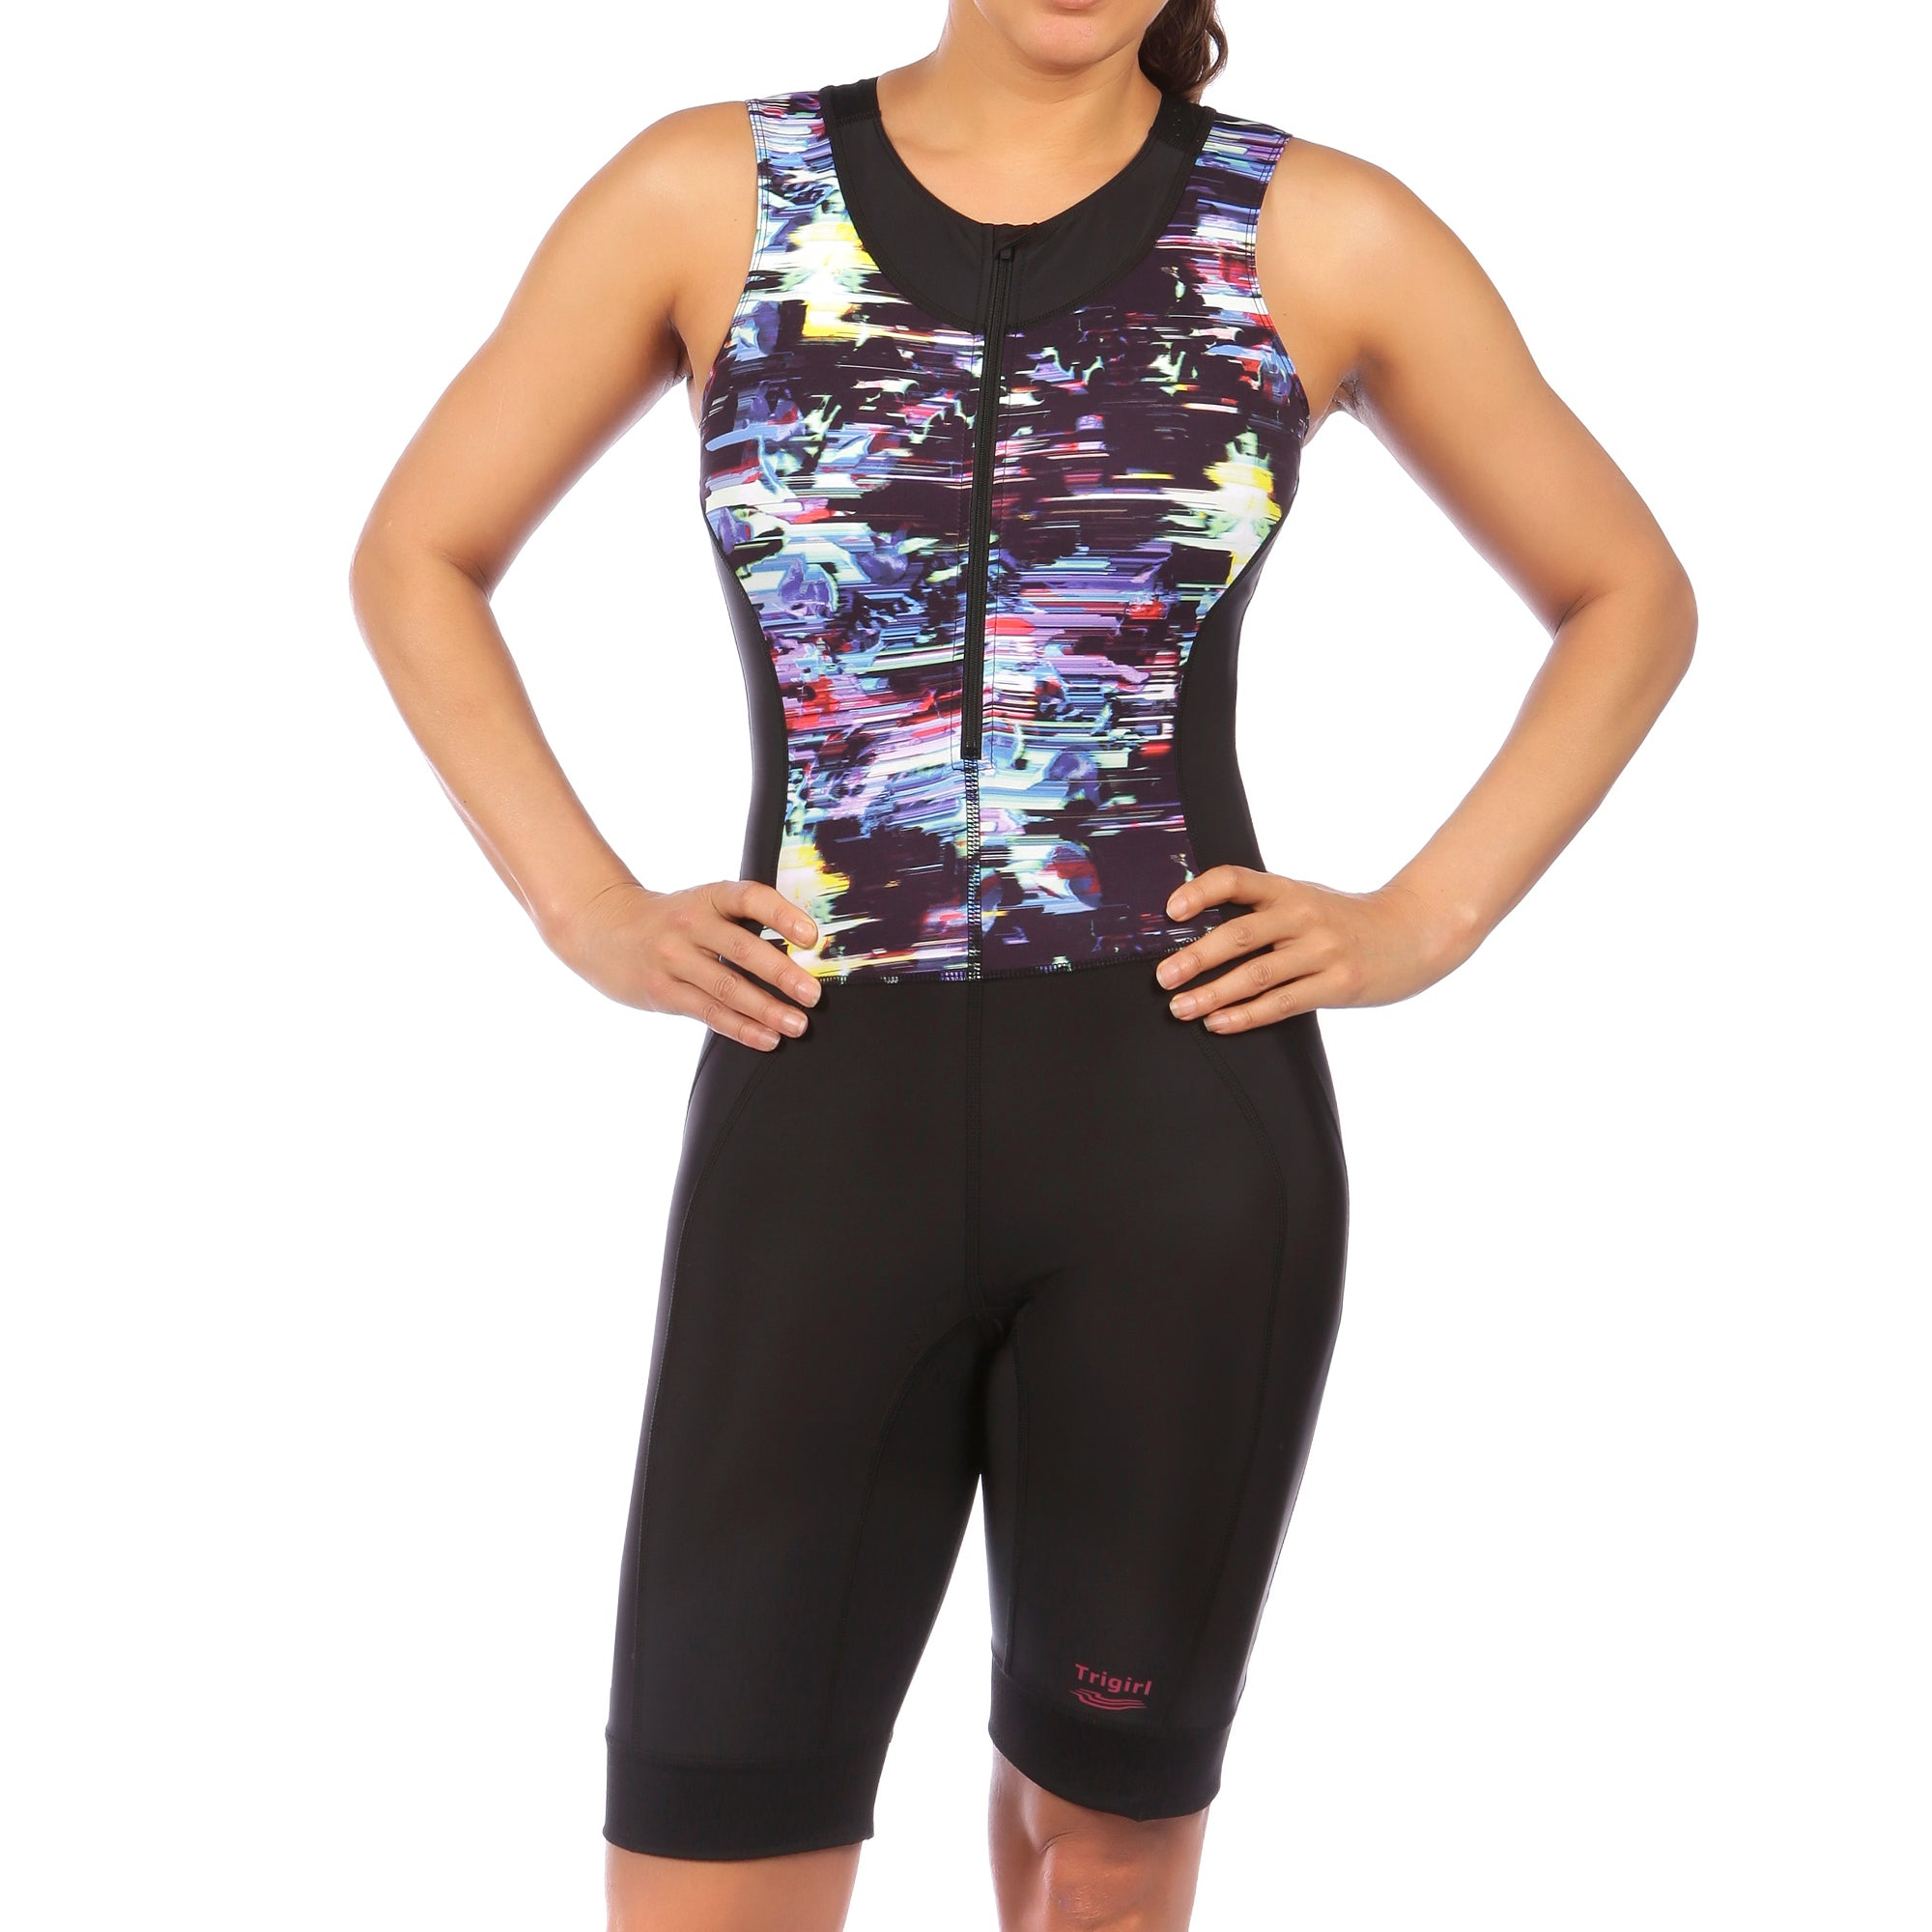 Ritzy Trisuit with/ without Support in Glitched Floral